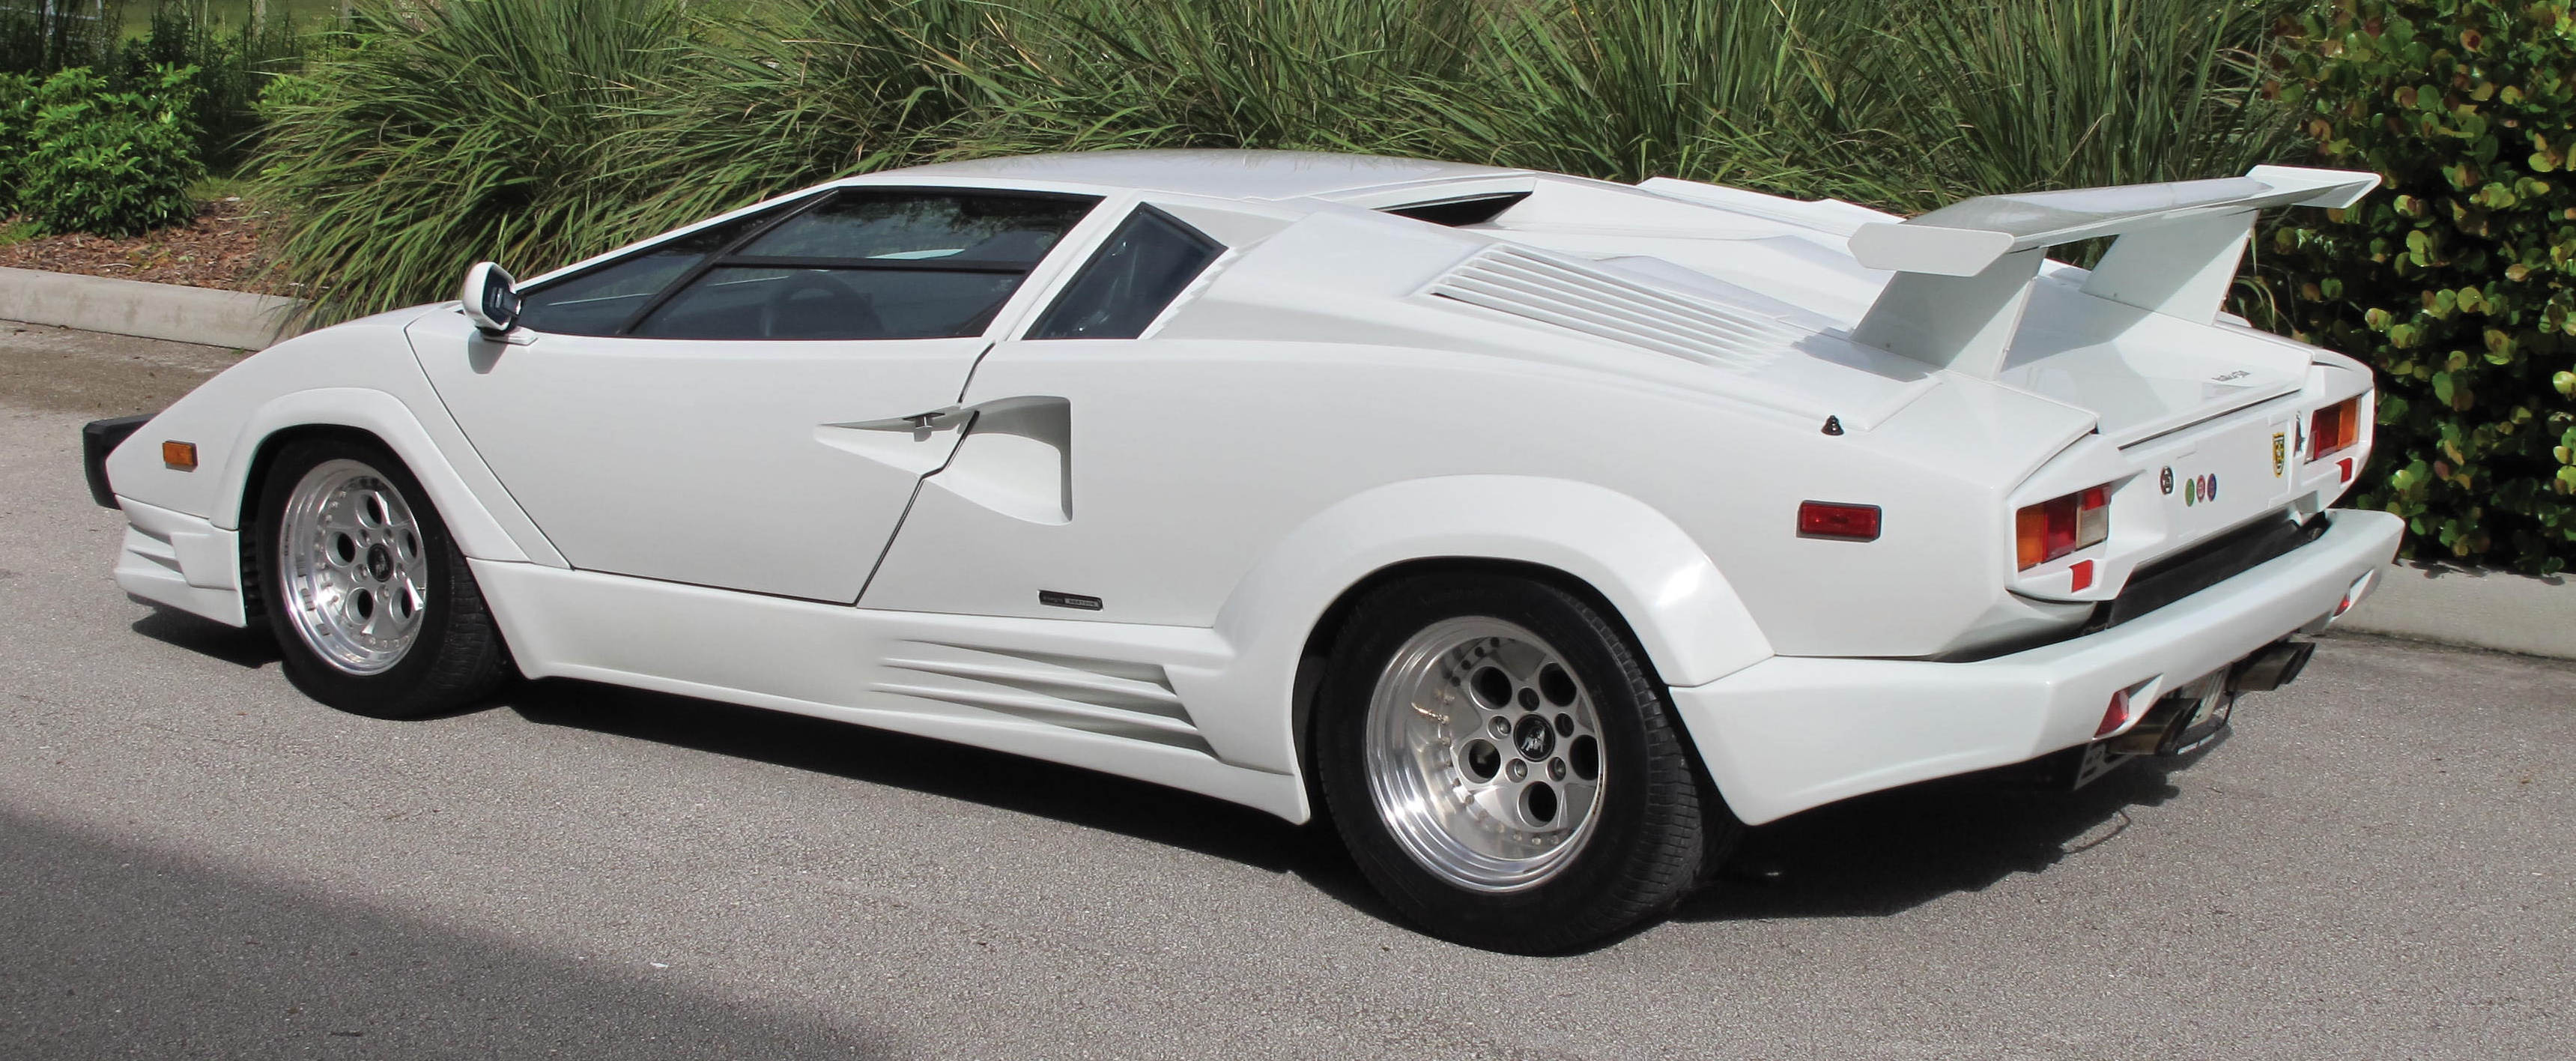 anniversary edition countach among star cars for sale at hilton head island